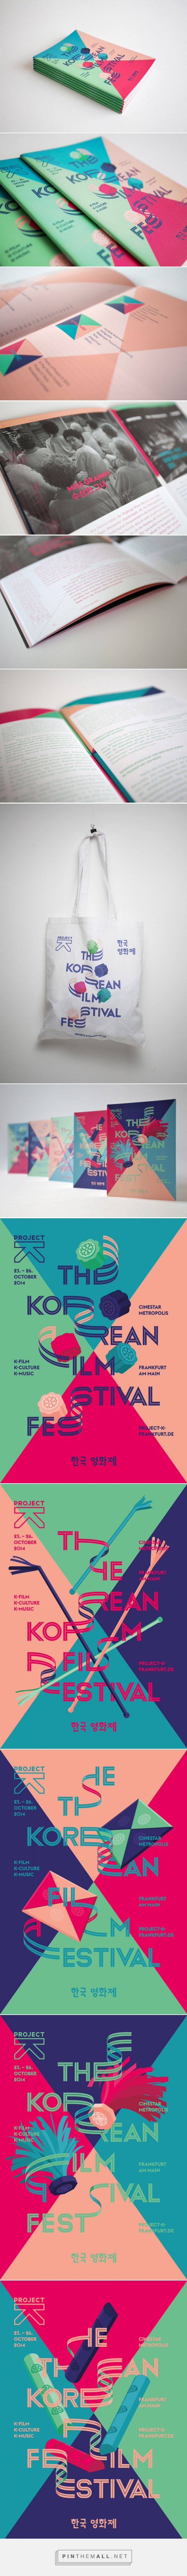 The Korean Film Festival Branding by Il-Ho | Inspiration Grid | Design Inspiration... - a grouped images picture - Pin Them All